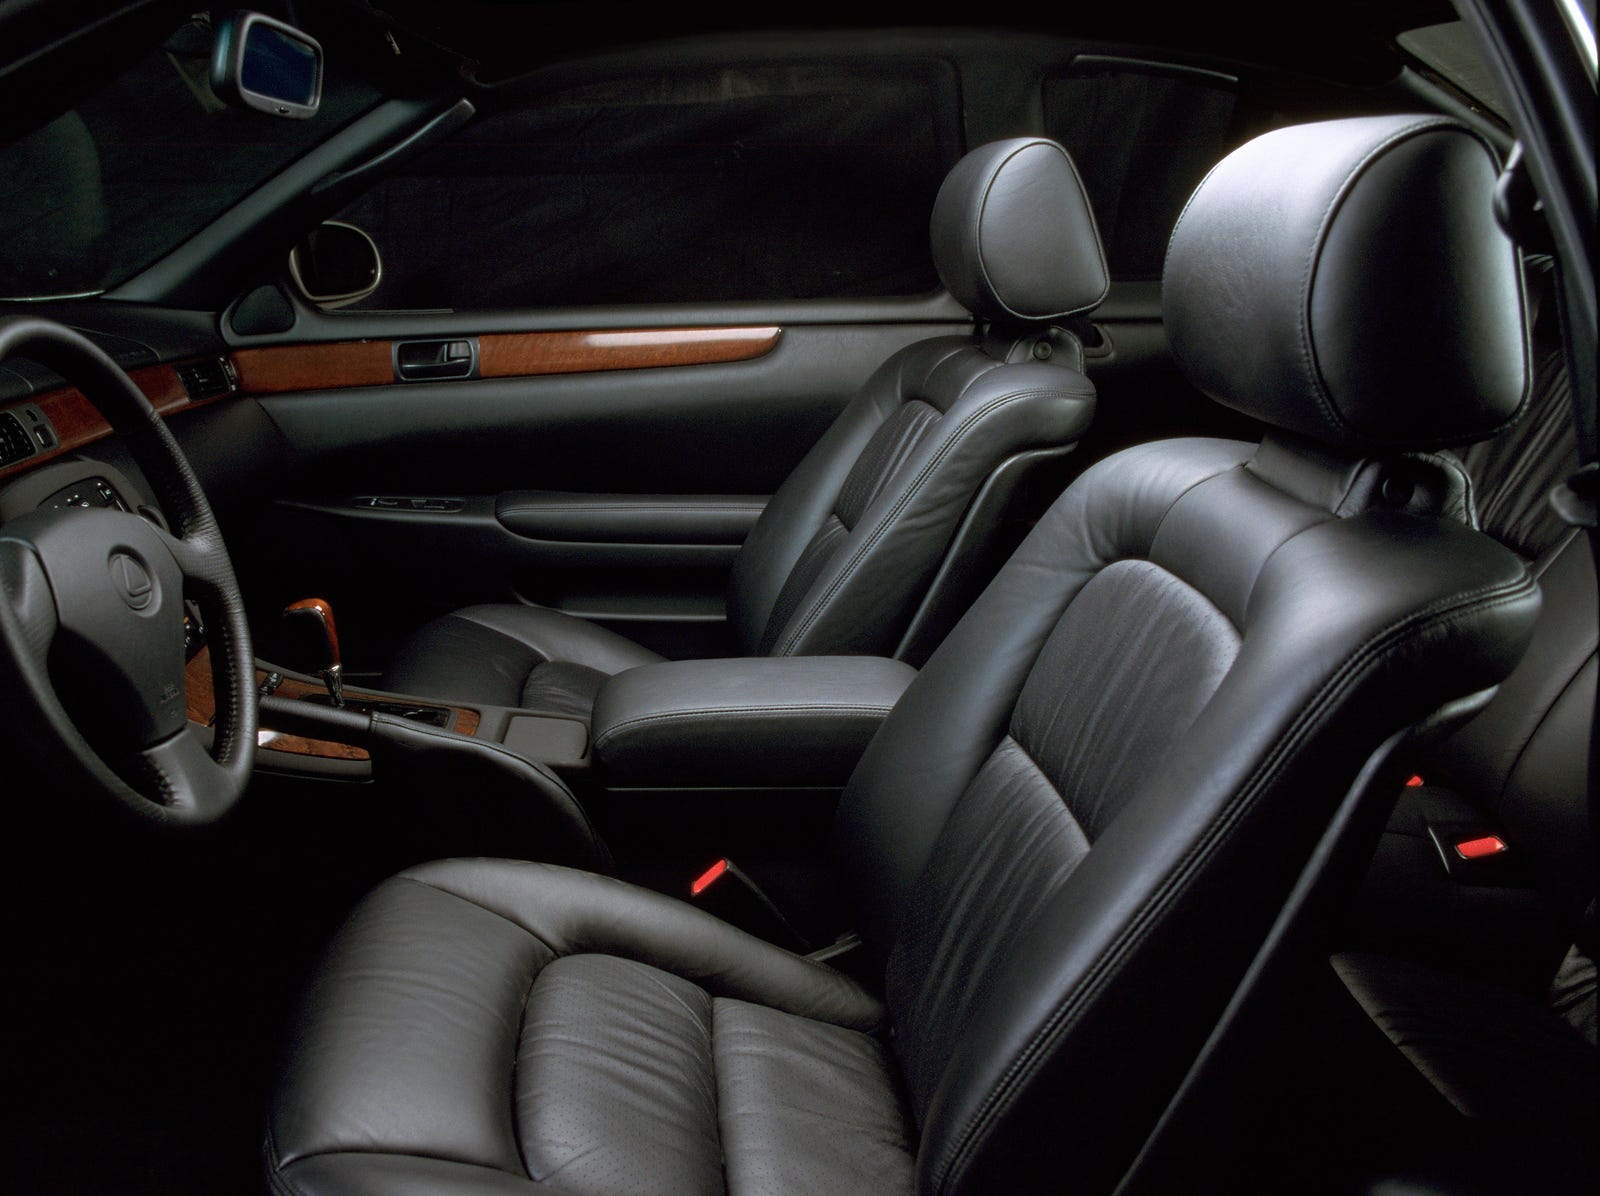 The Lexus SC400 pictured.